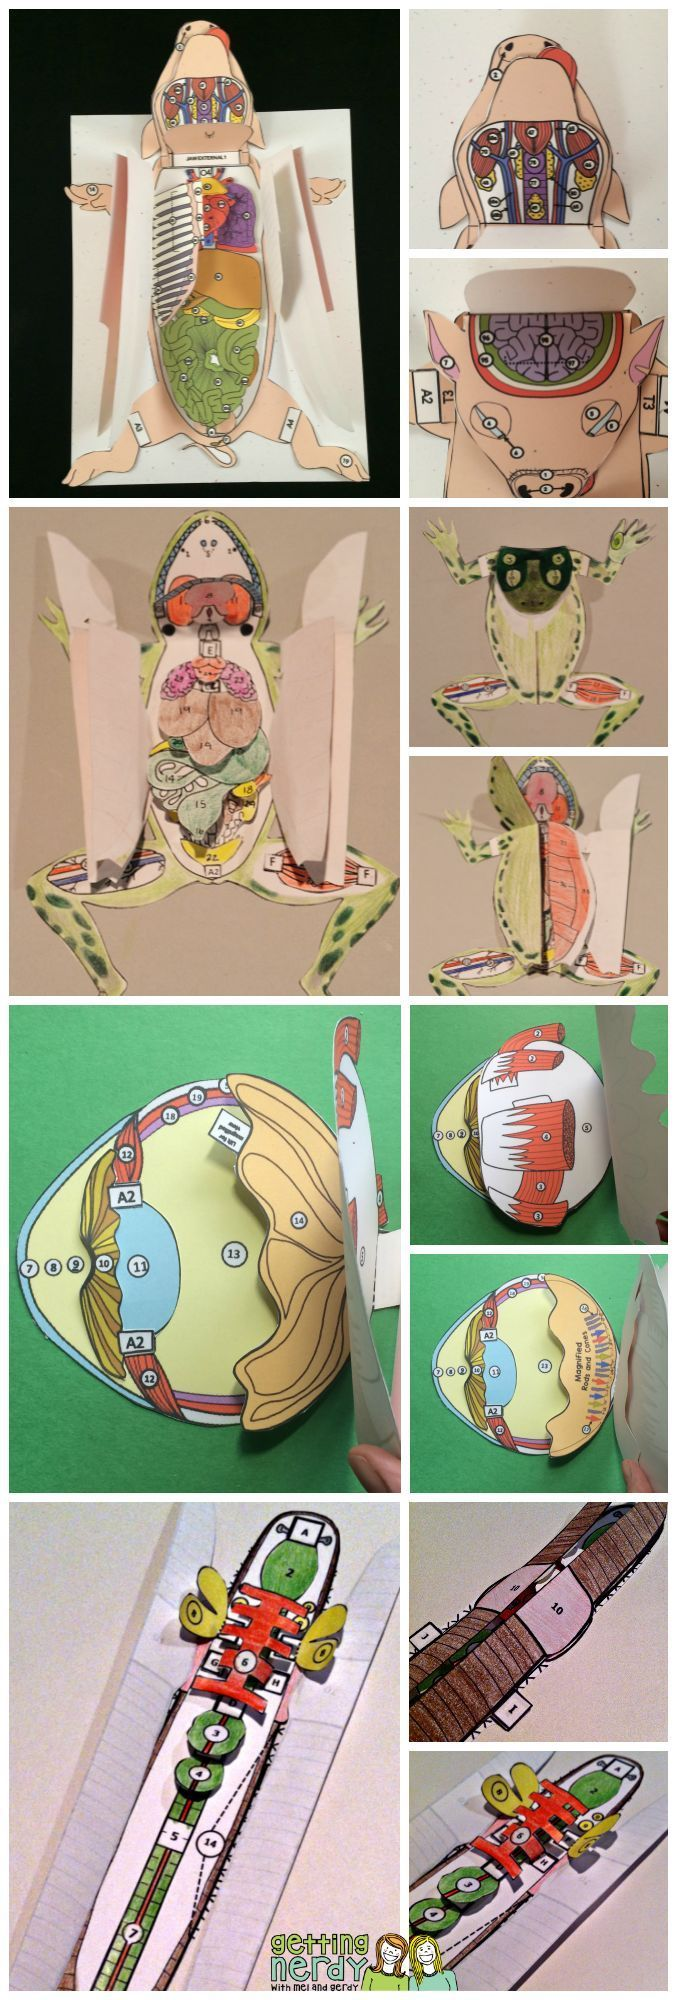 Why you should use Paper Scienstructable 3D Dissection Models for Life Science and Biology #articlesblog